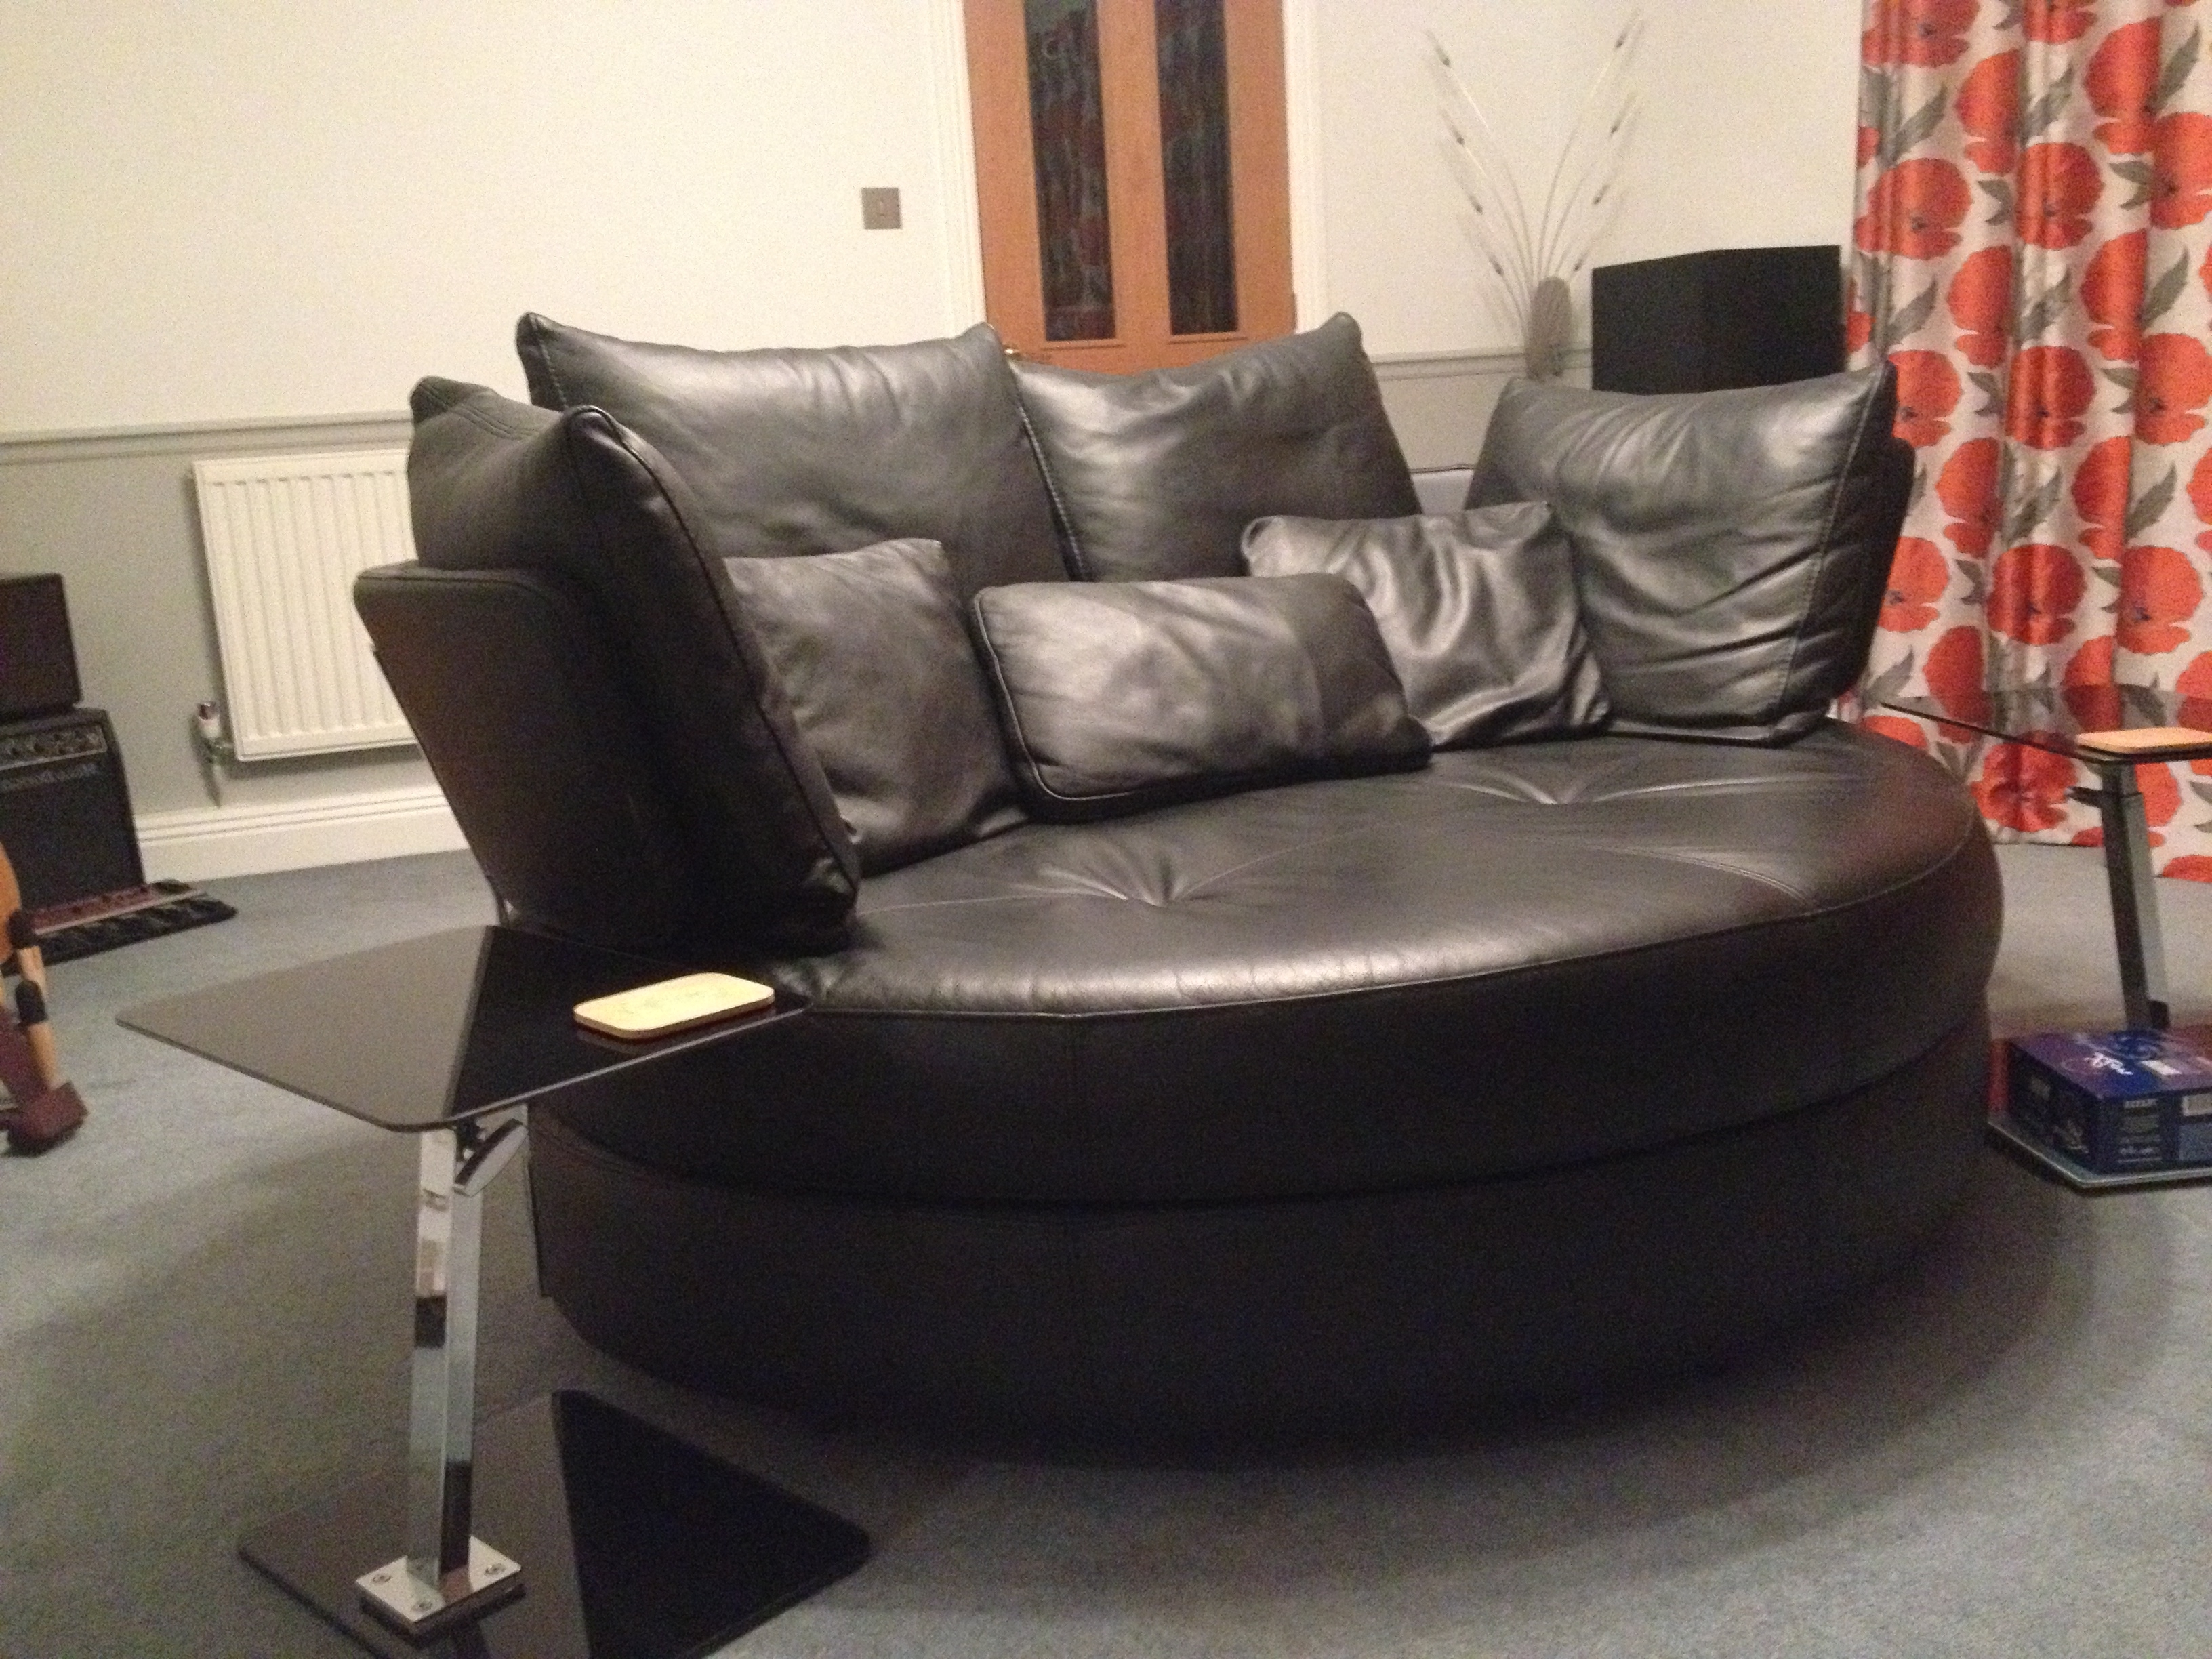 Sofas With Swivel Chair In Preferred Fabulous Leather 2 Person Large Swivel Snuggler Chair/sofa (View 14 of 20)